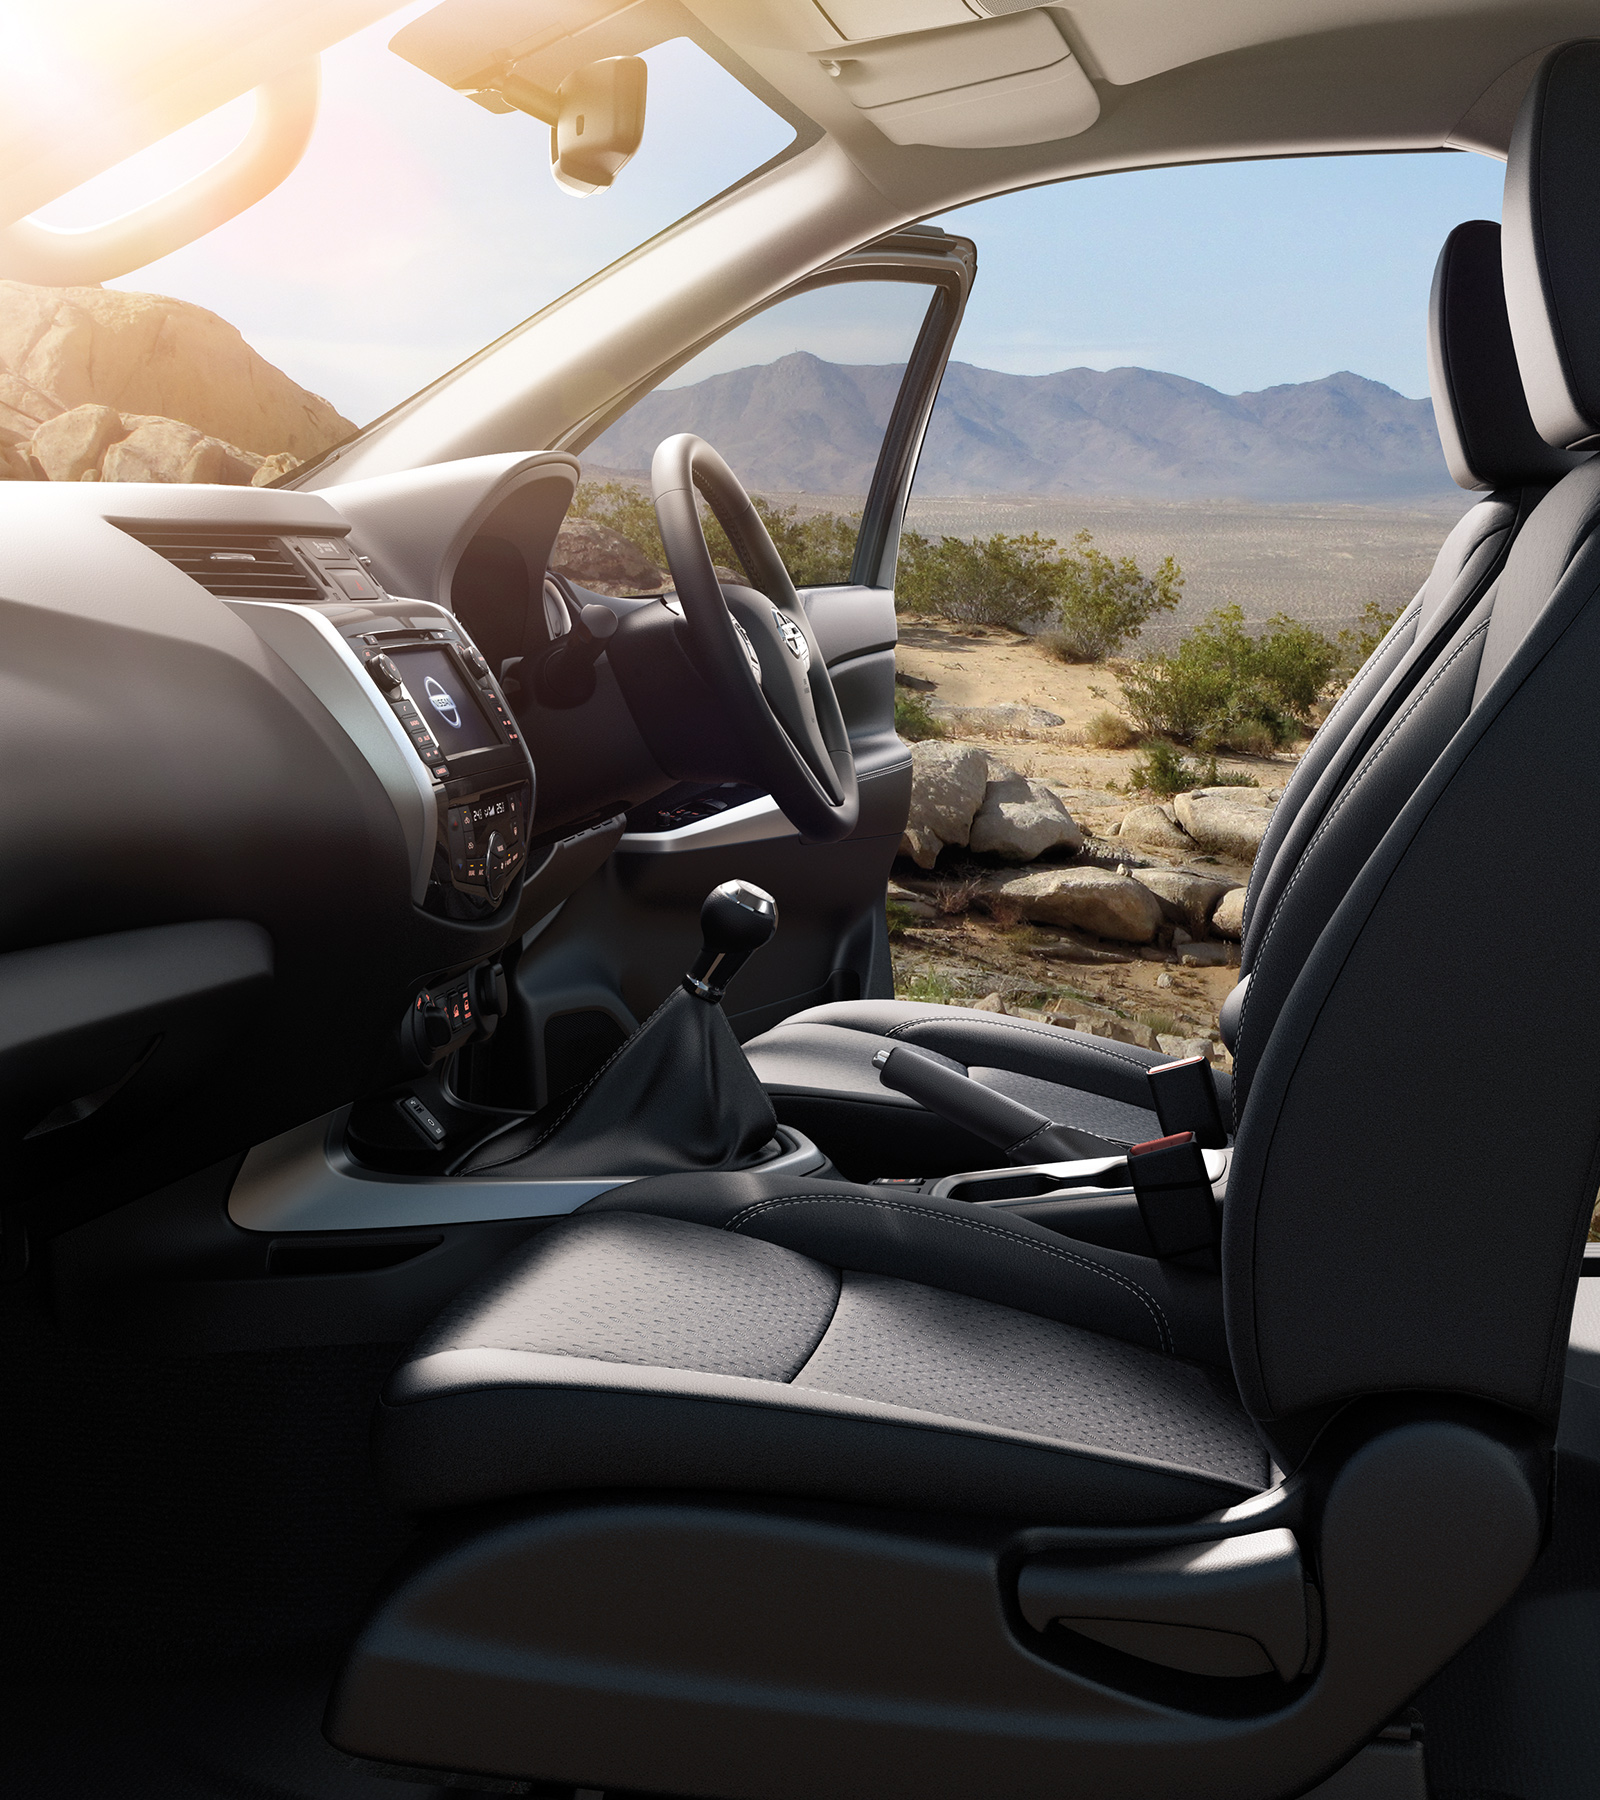 New Nissan Navara Off-Roader at32 pick-up profile interior of the car showing driver comfort